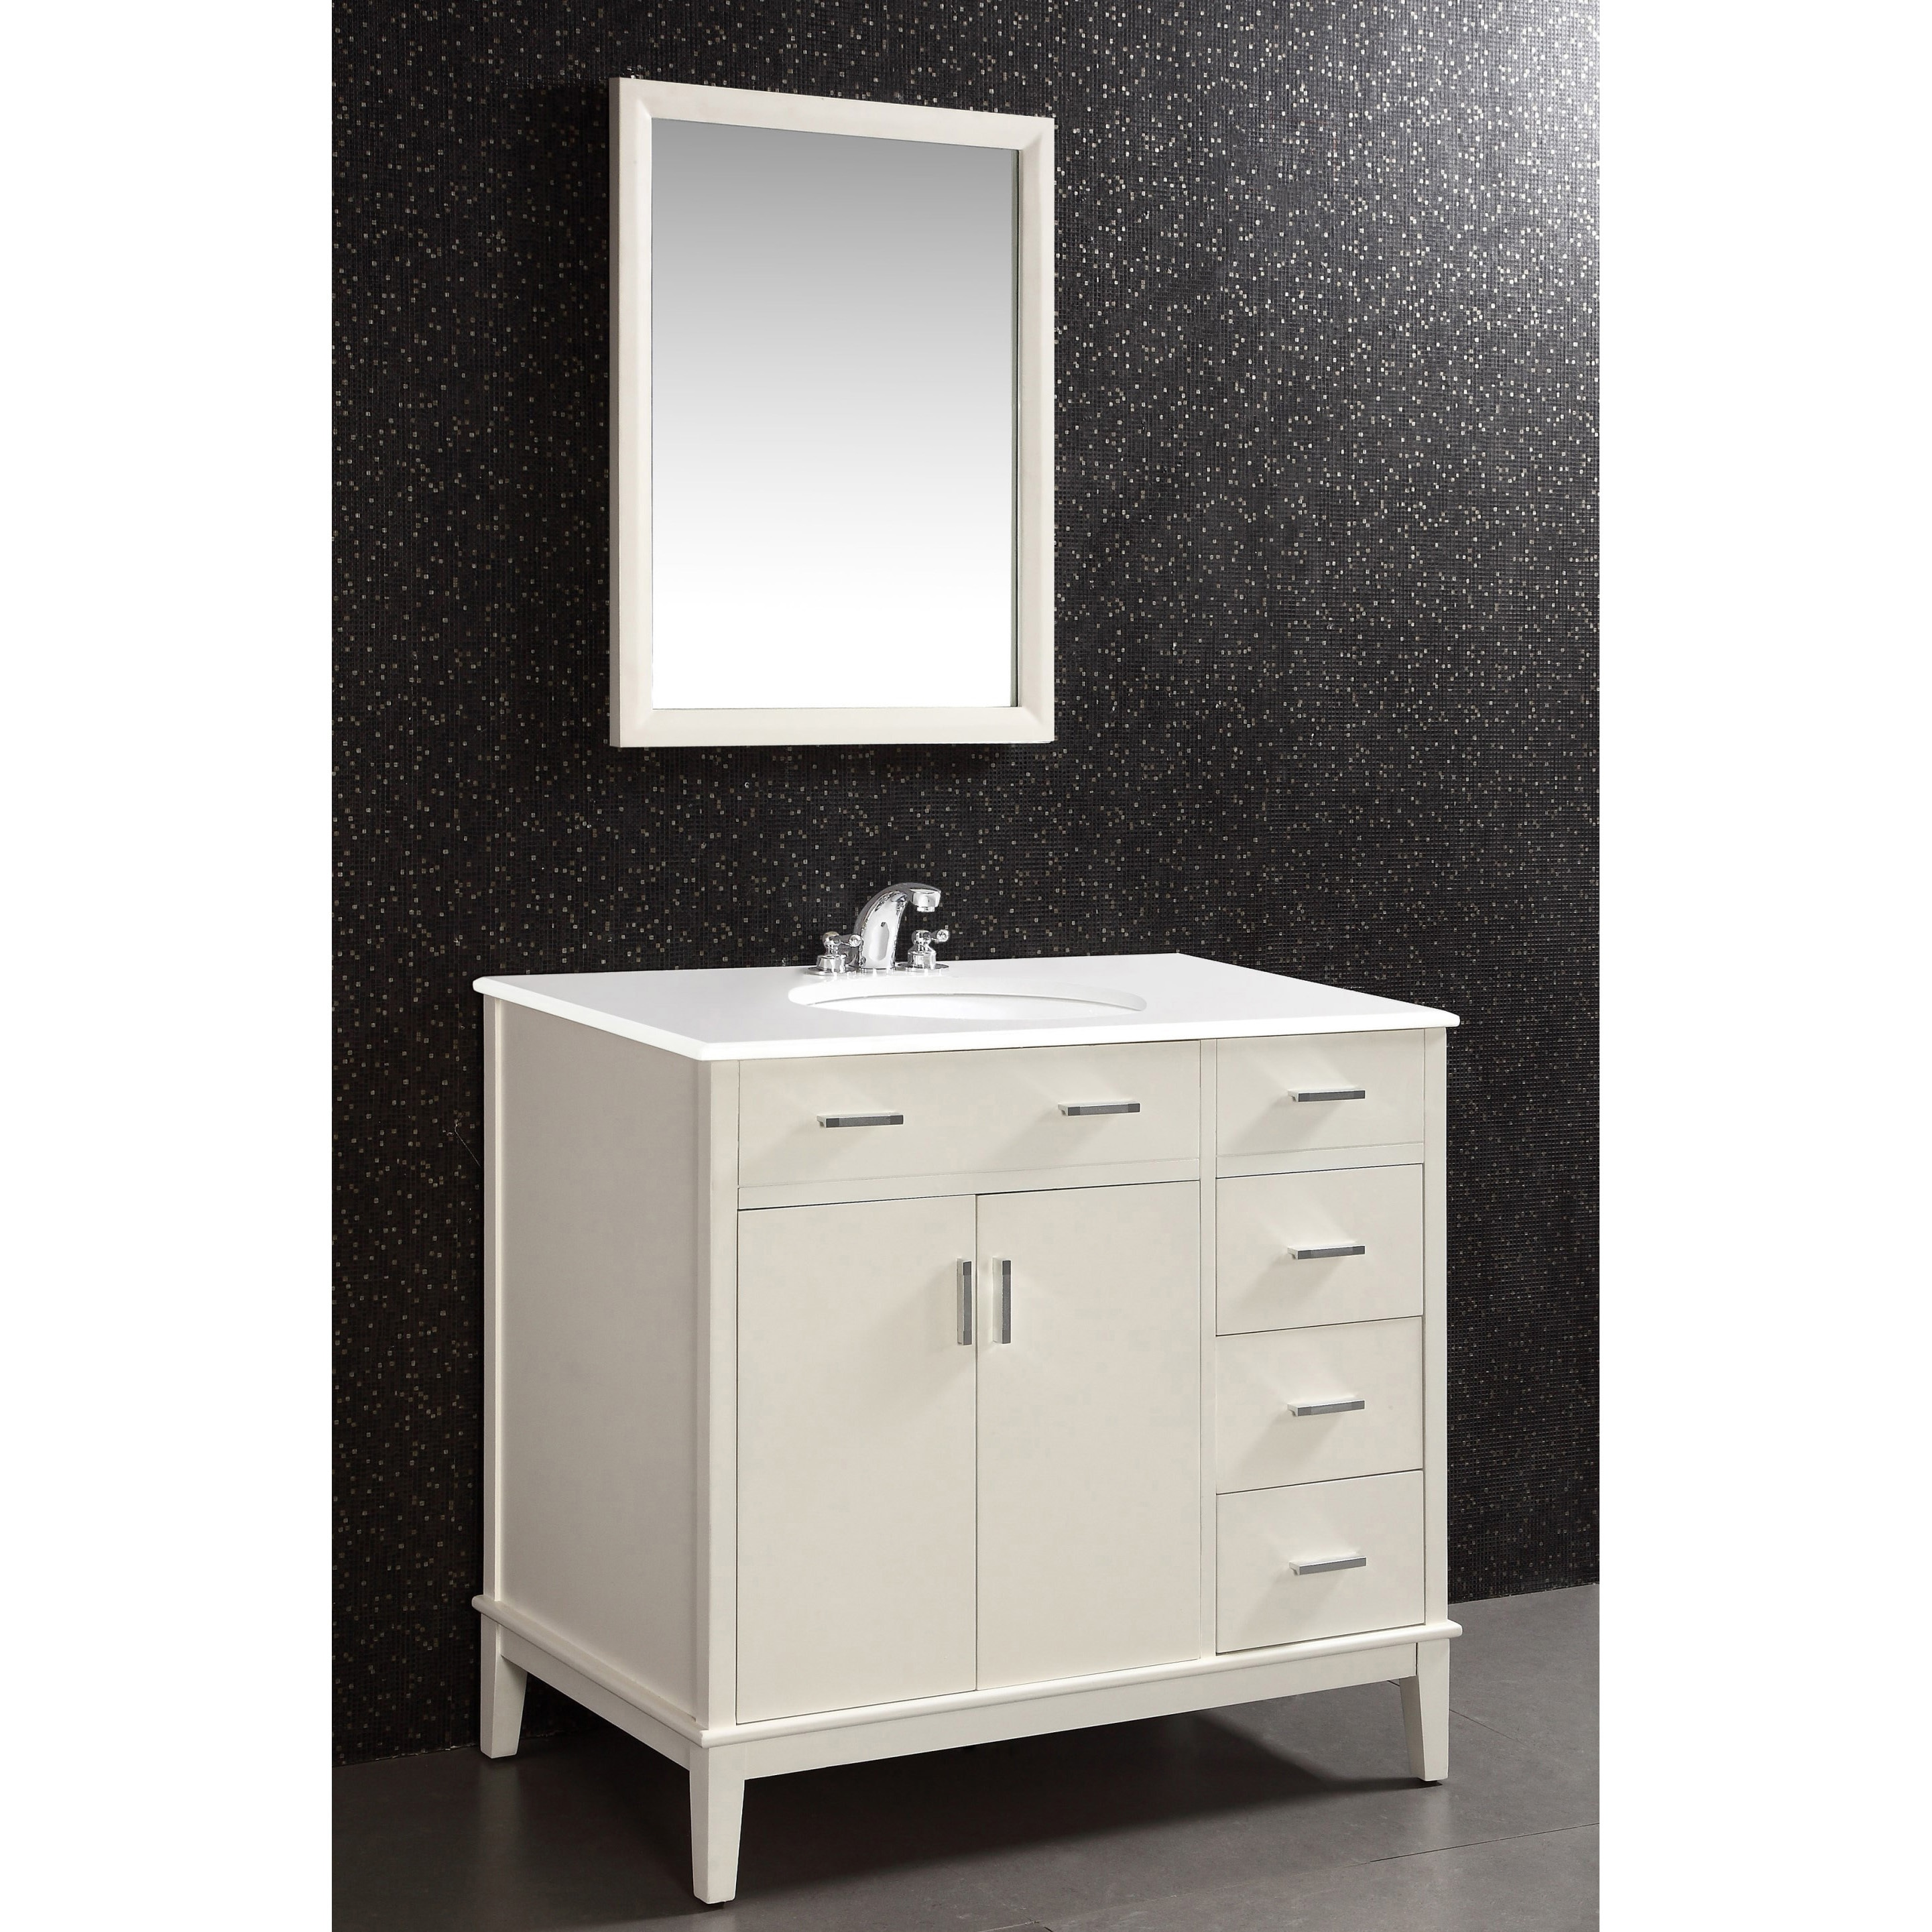 oxford oxford white 36 inch bath vanity with 2 doors and white quartz marble top overstock. Black Bedroom Furniture Sets. Home Design Ideas